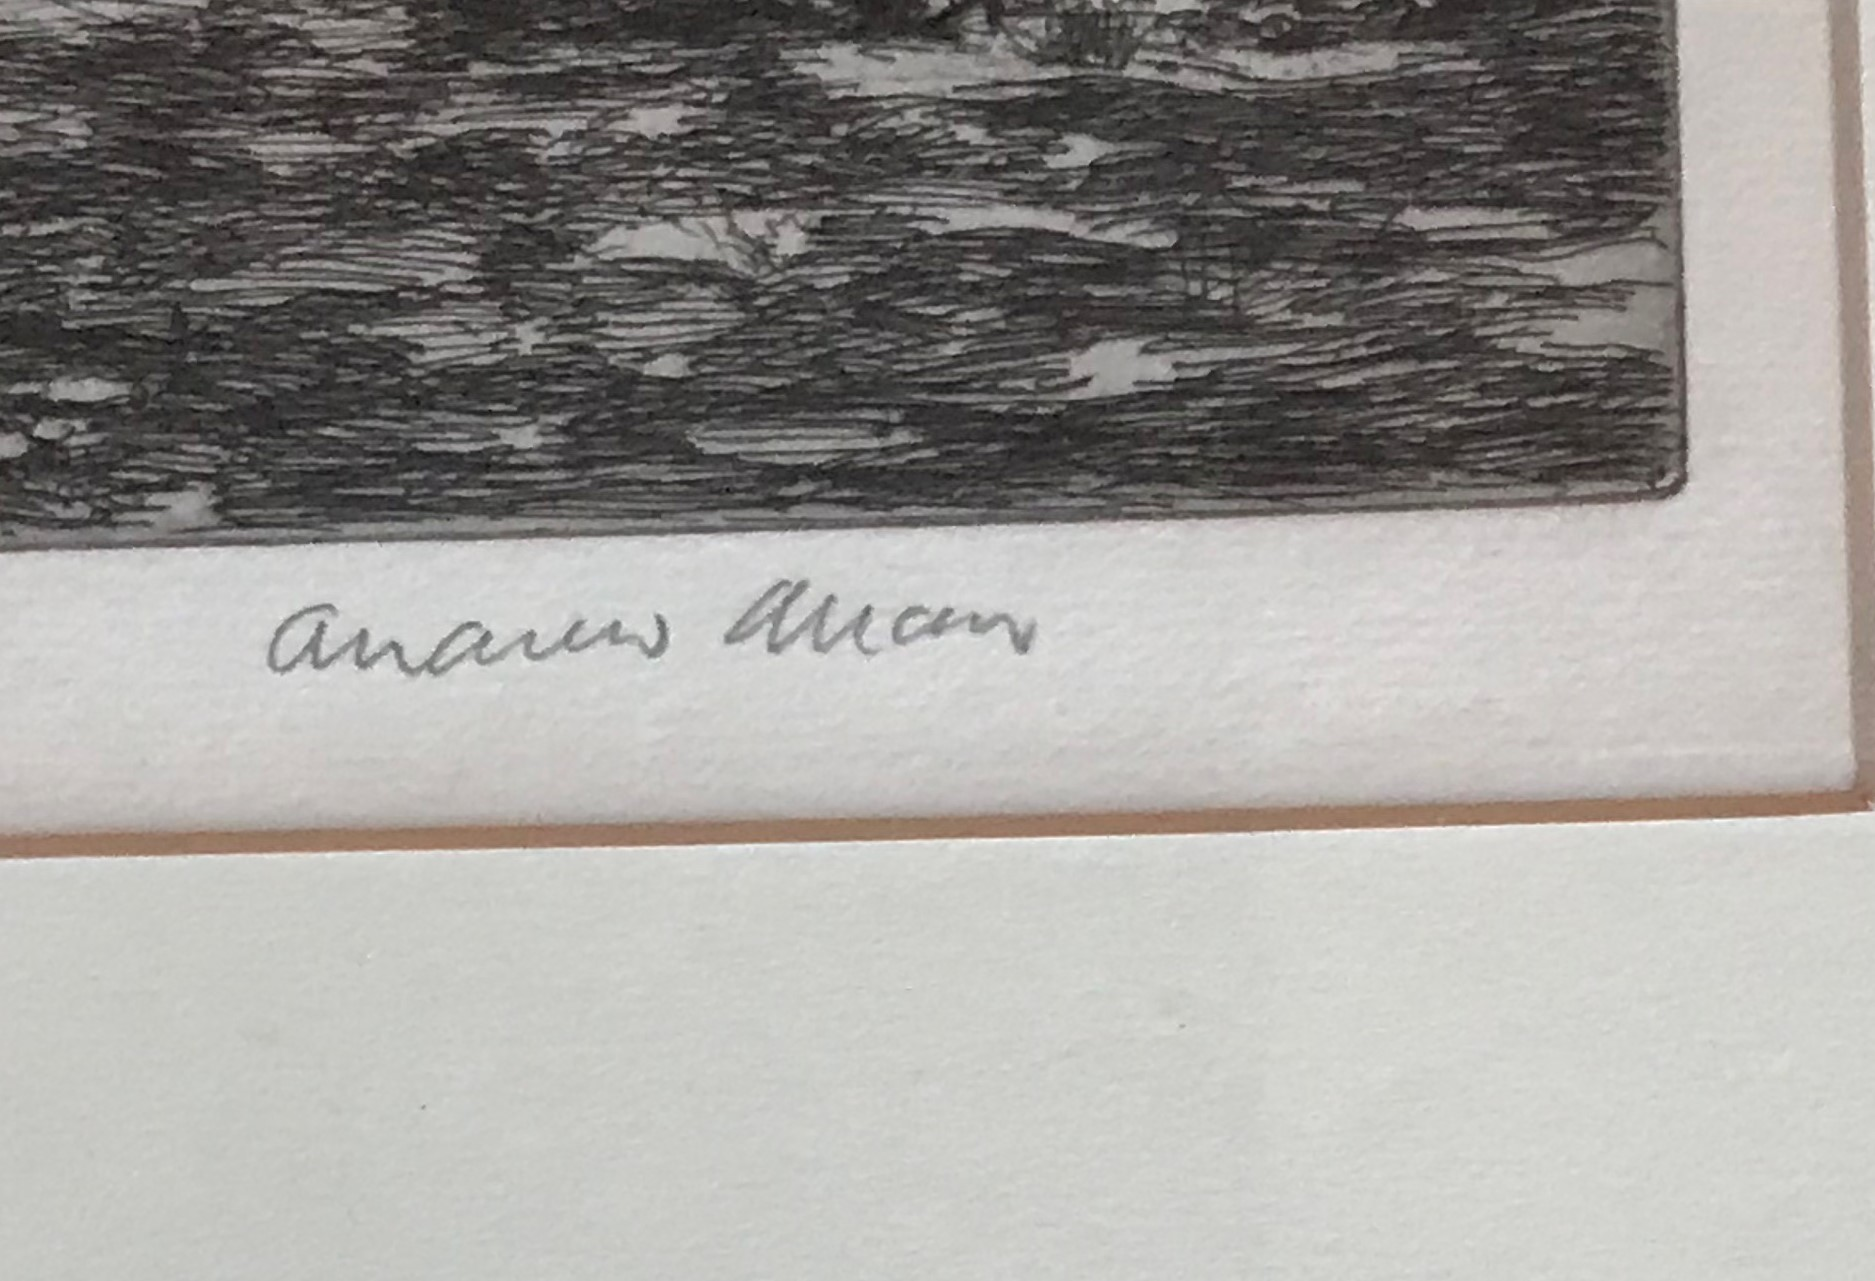 Andrew Allan (1863-1940) pencil signed etching The Picnic - Image 3 of 4